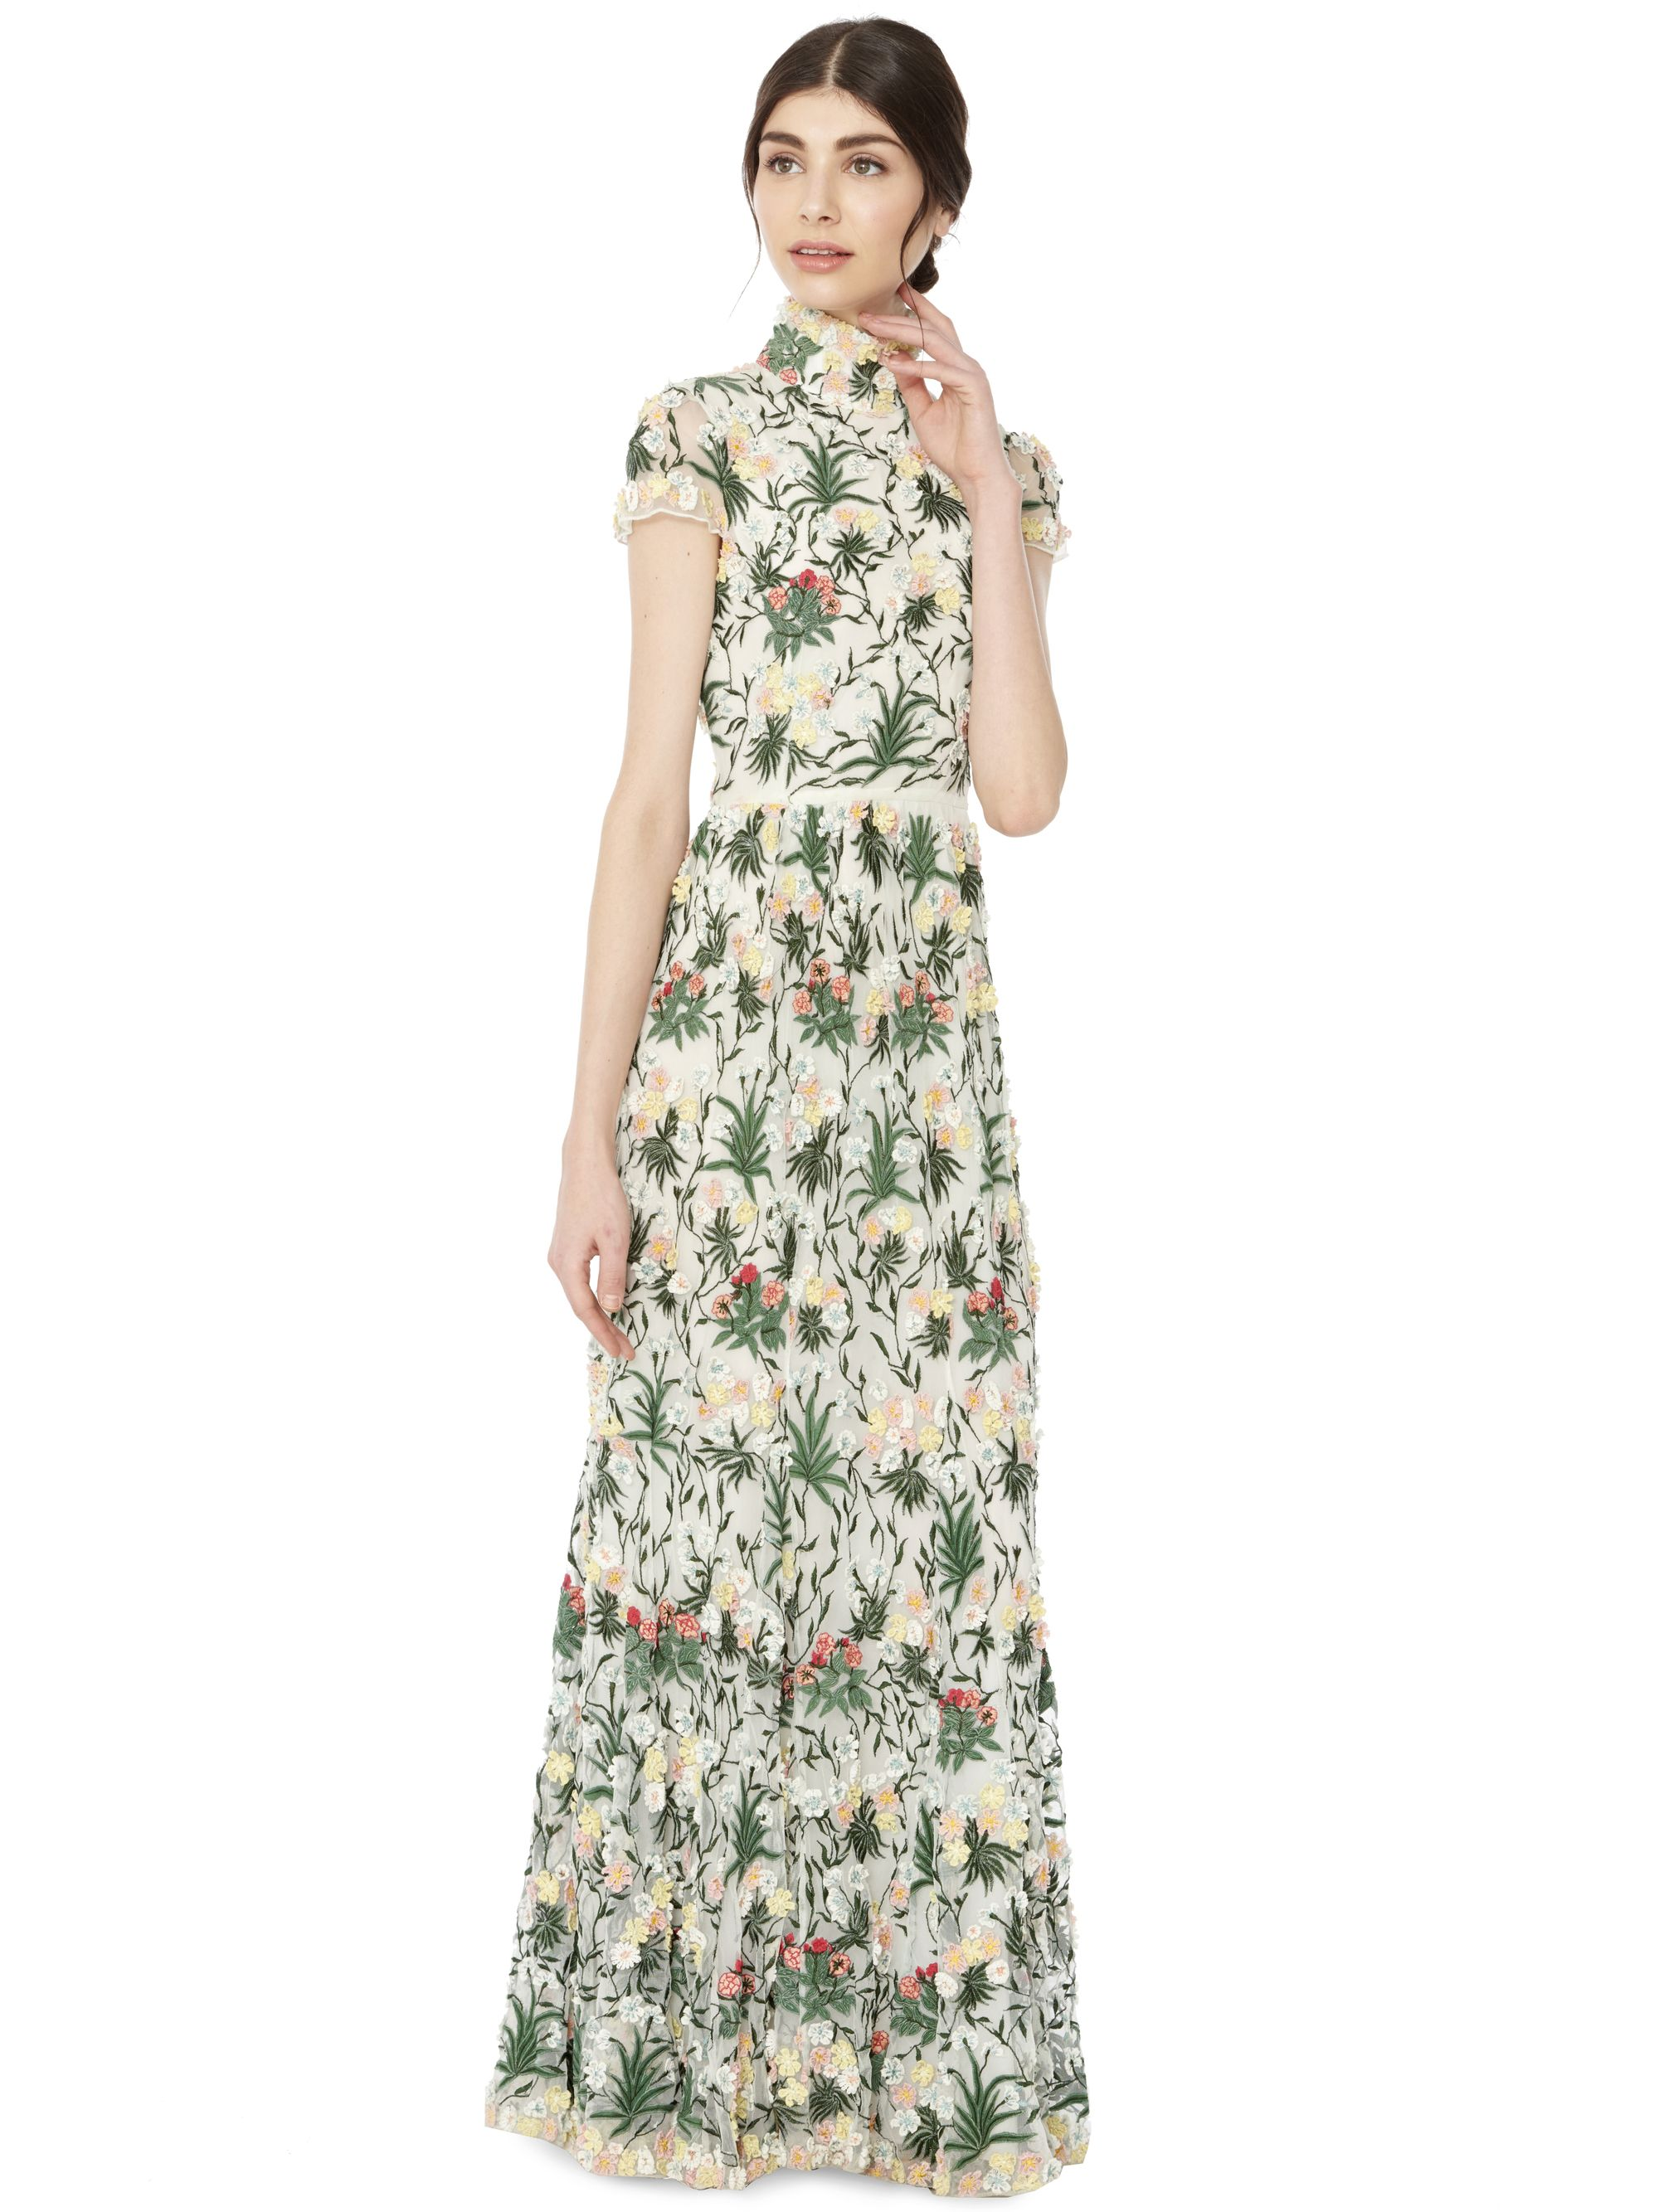 ARWEN LONG EMBELLISHED GOWN by Alice + Olivia | My Style | Pinterest ...